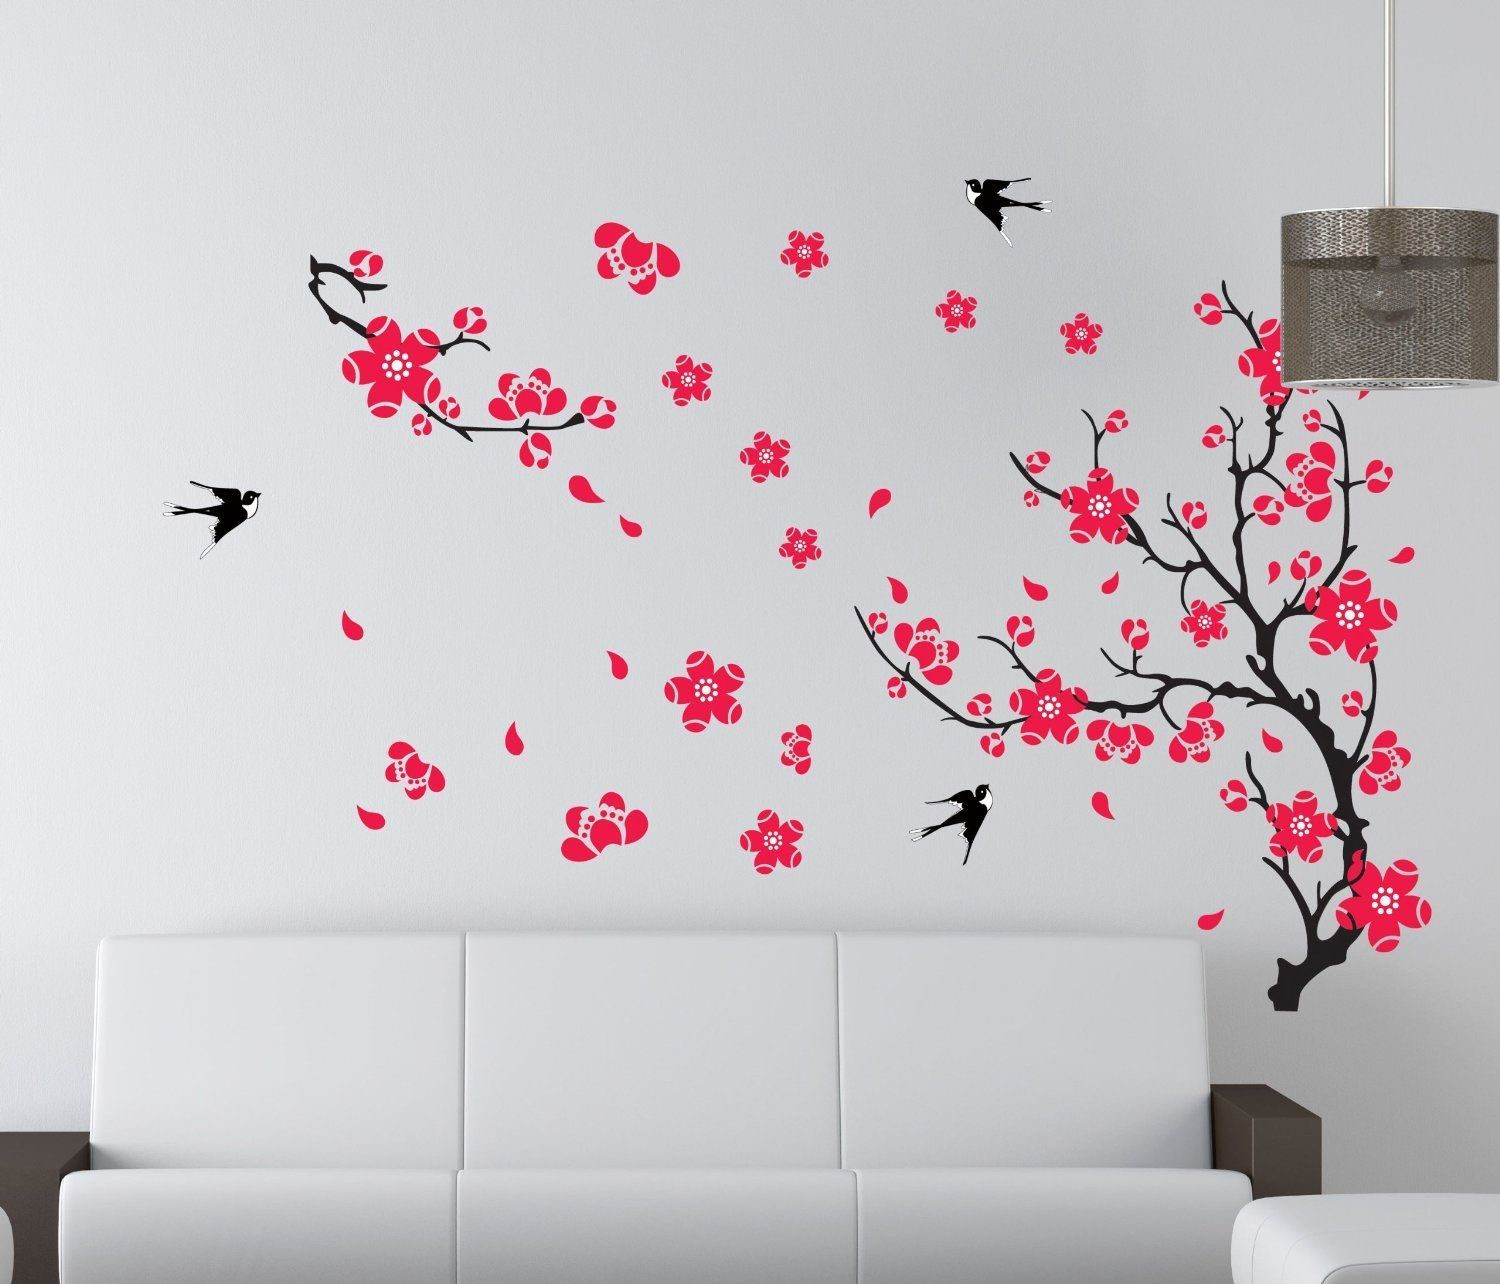 Large plum blossom flower removable wall sticker decor decal large plum blossom flower removable wall sticker decor decal amipublicfo Gallery